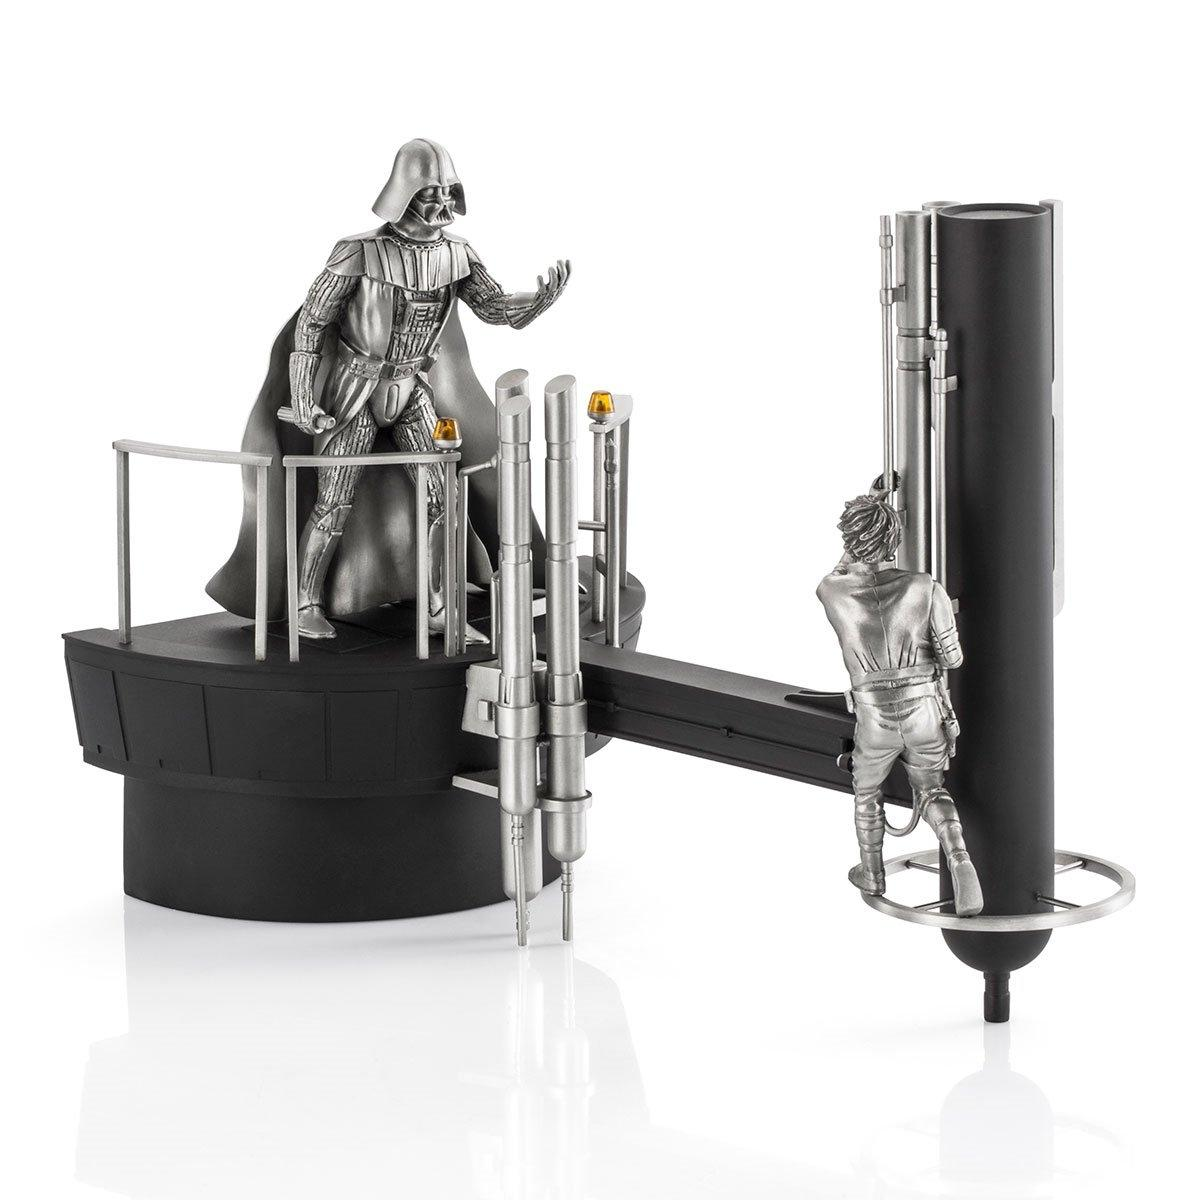 Limited Edition 'I am your father' Luke vs Vader Diorama